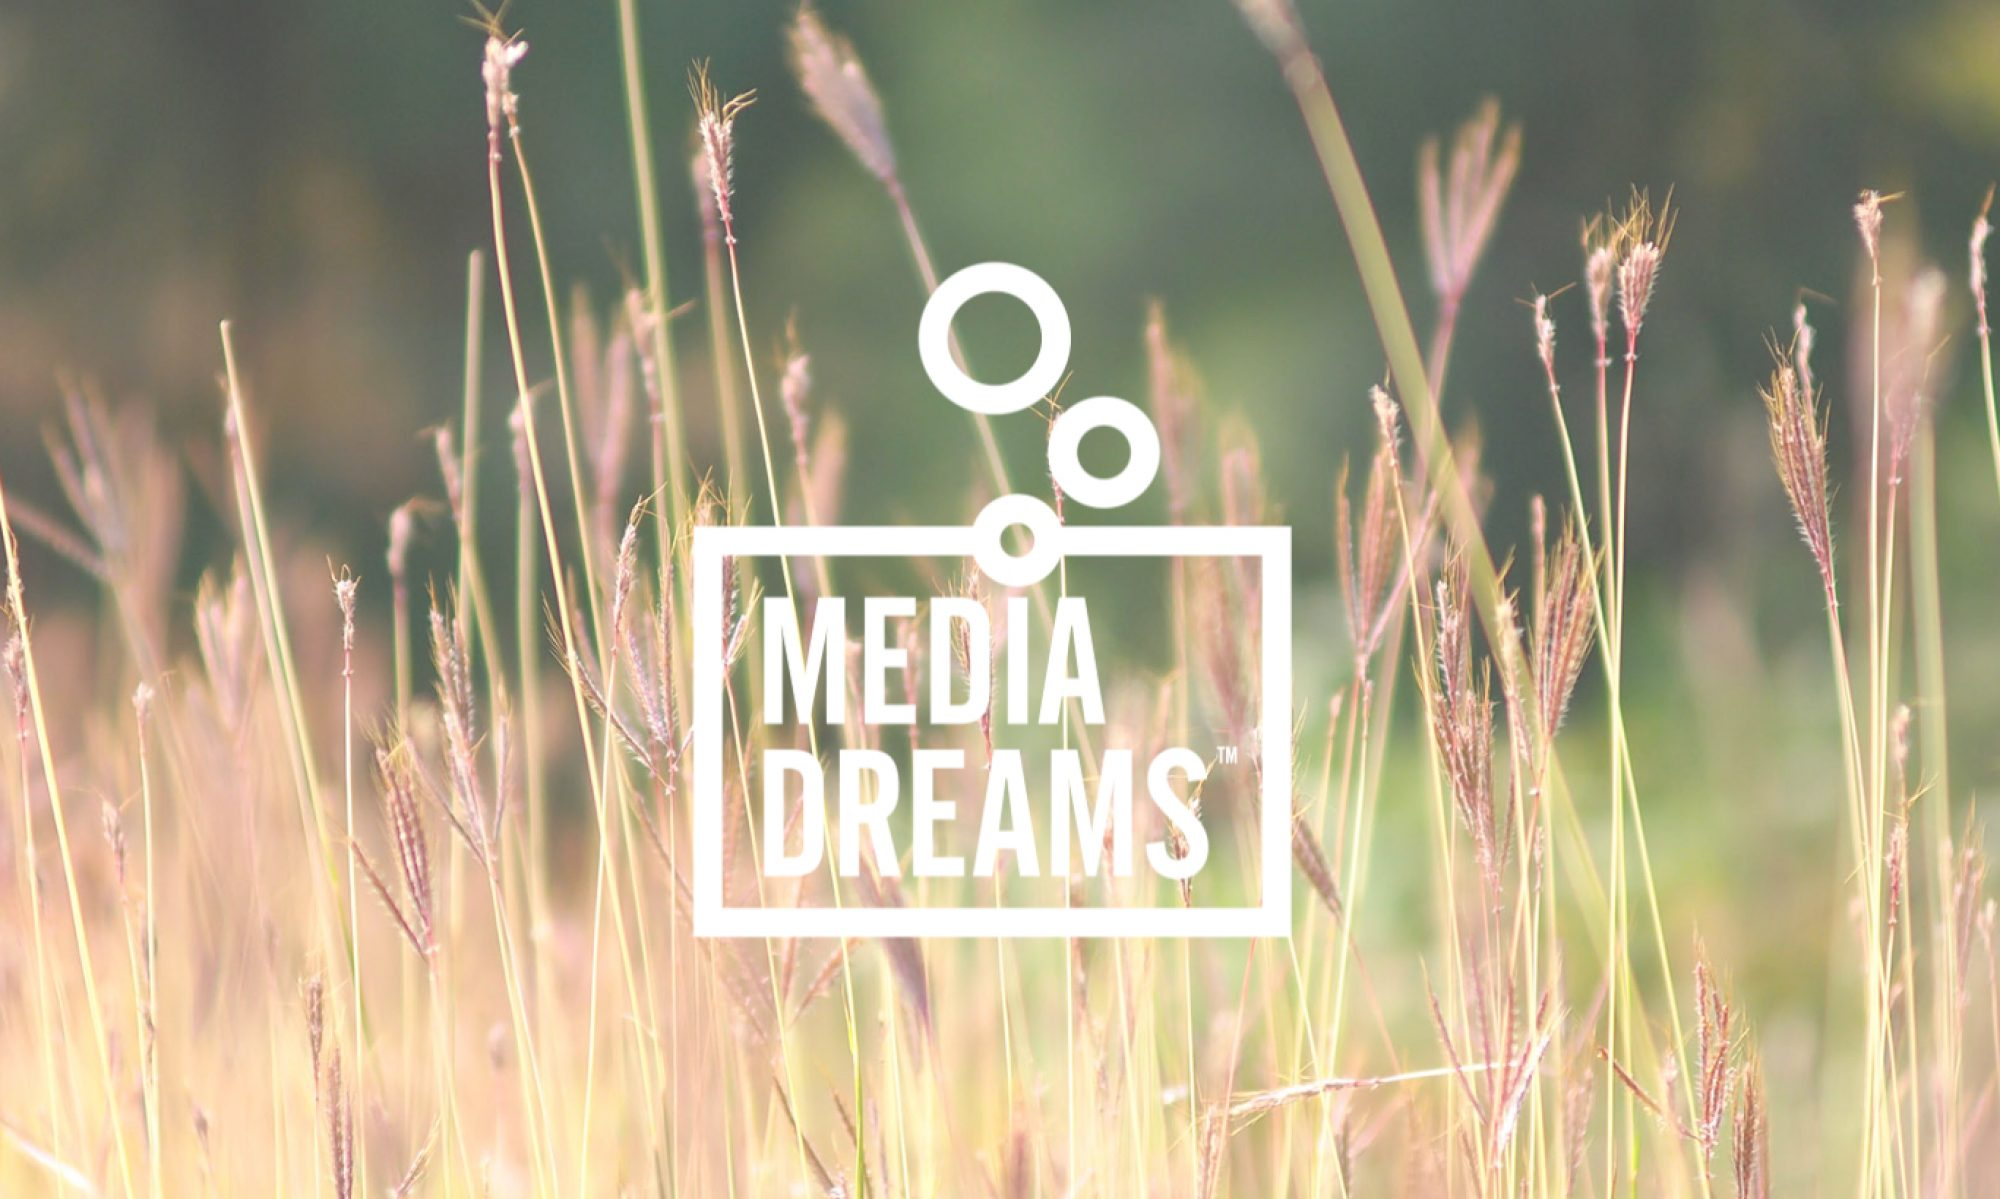 MEDIA DREAMS | The Creative Content & Storytelling Agency